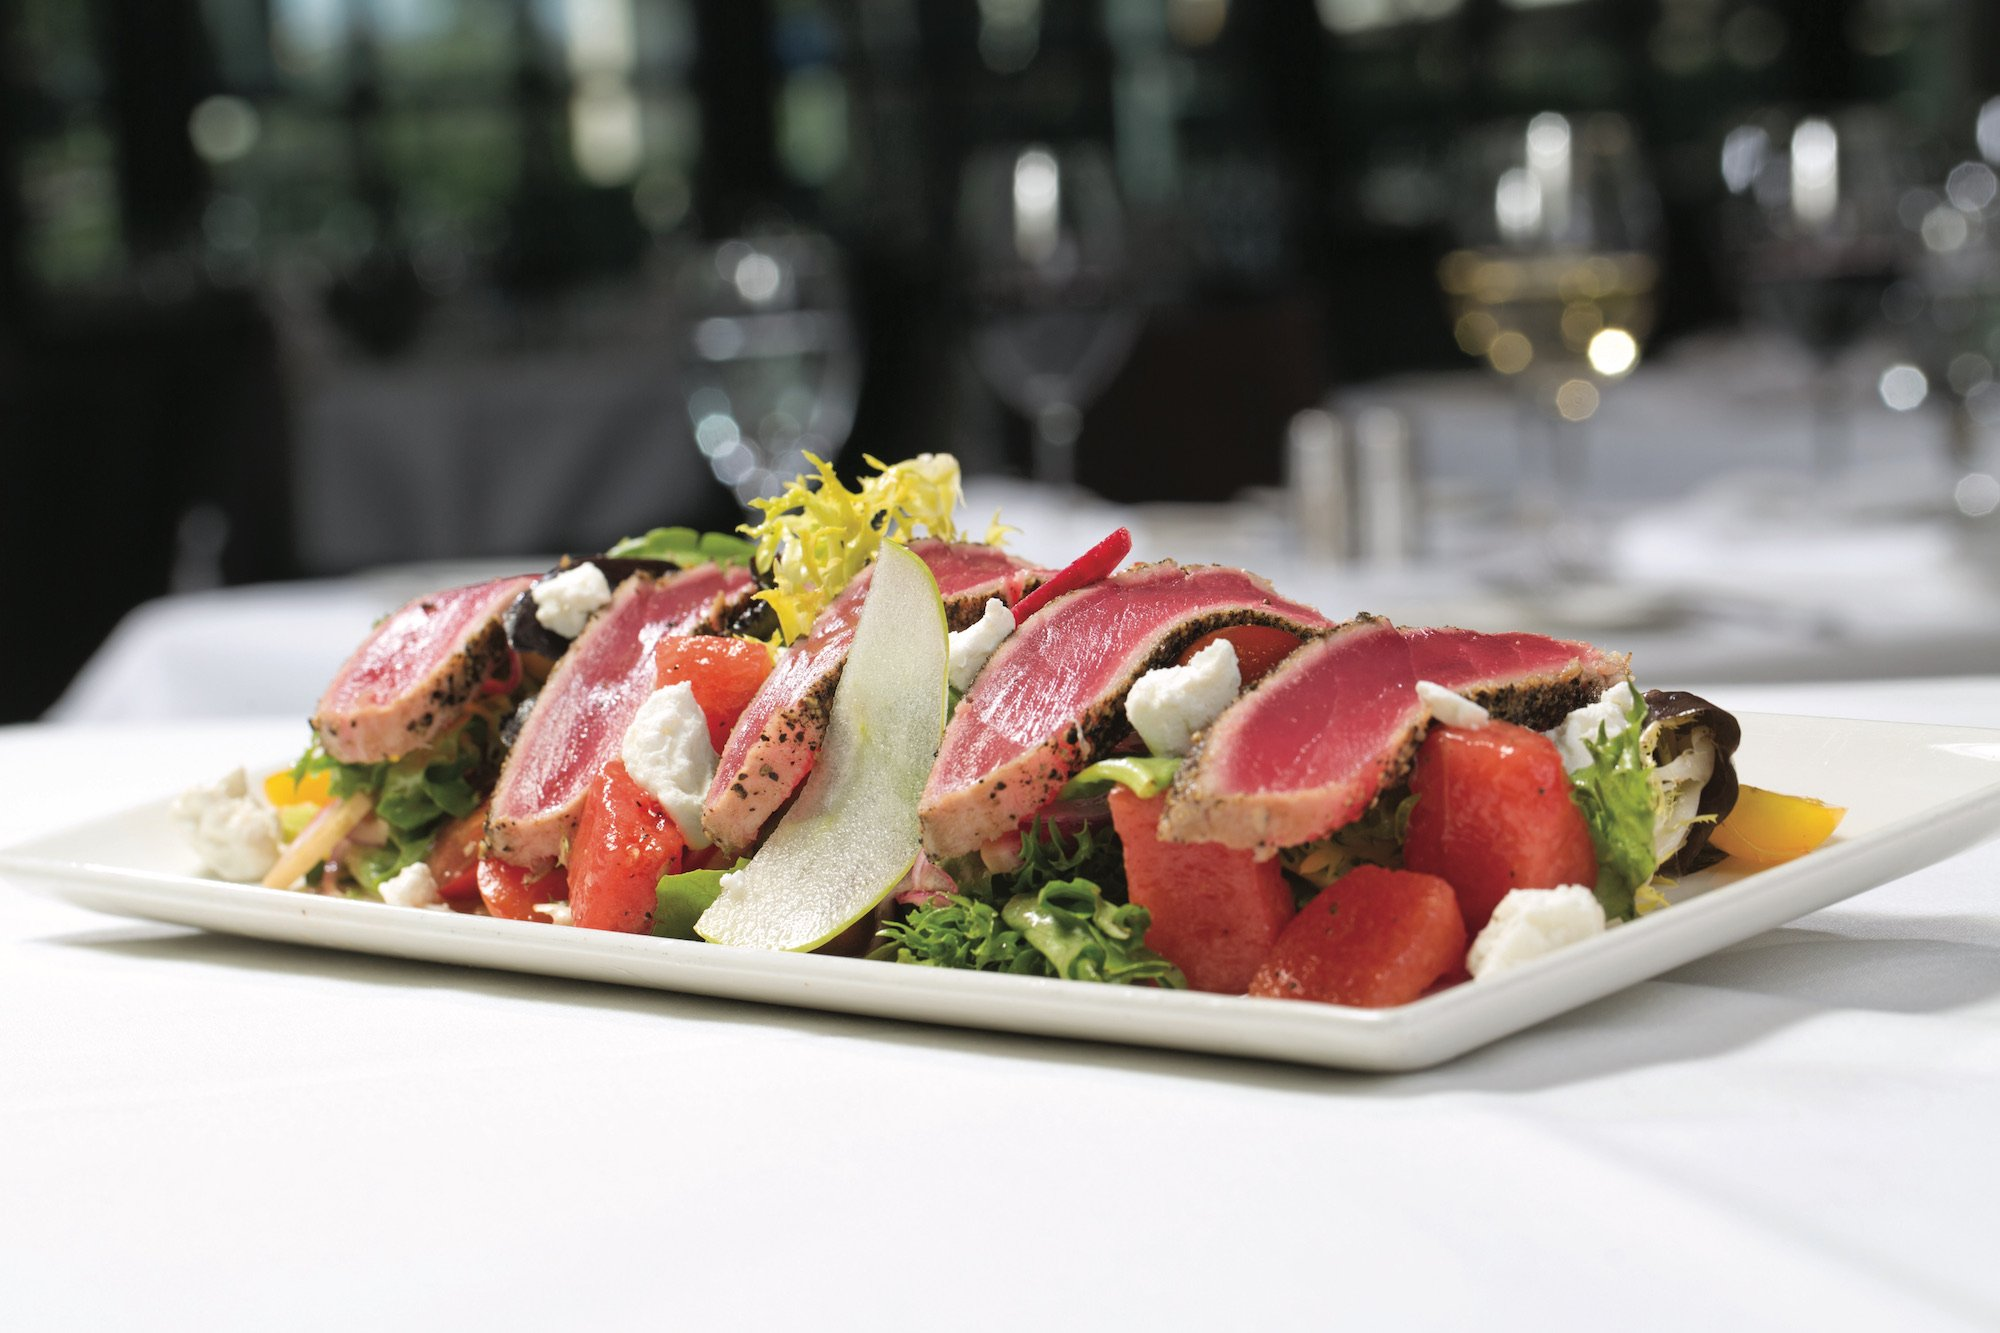 Pepper-crusted tuna lying on top of greens, tossed with watermelon, tomato, shaved red onions, and goat cheese